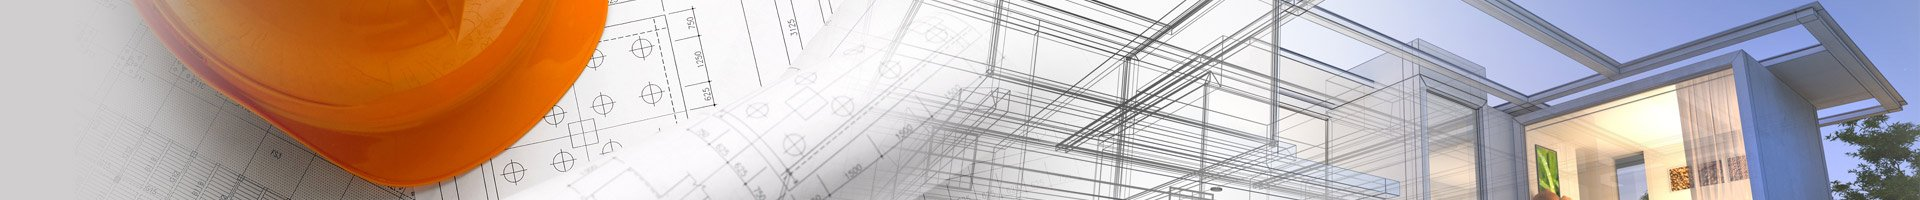 house structural plans